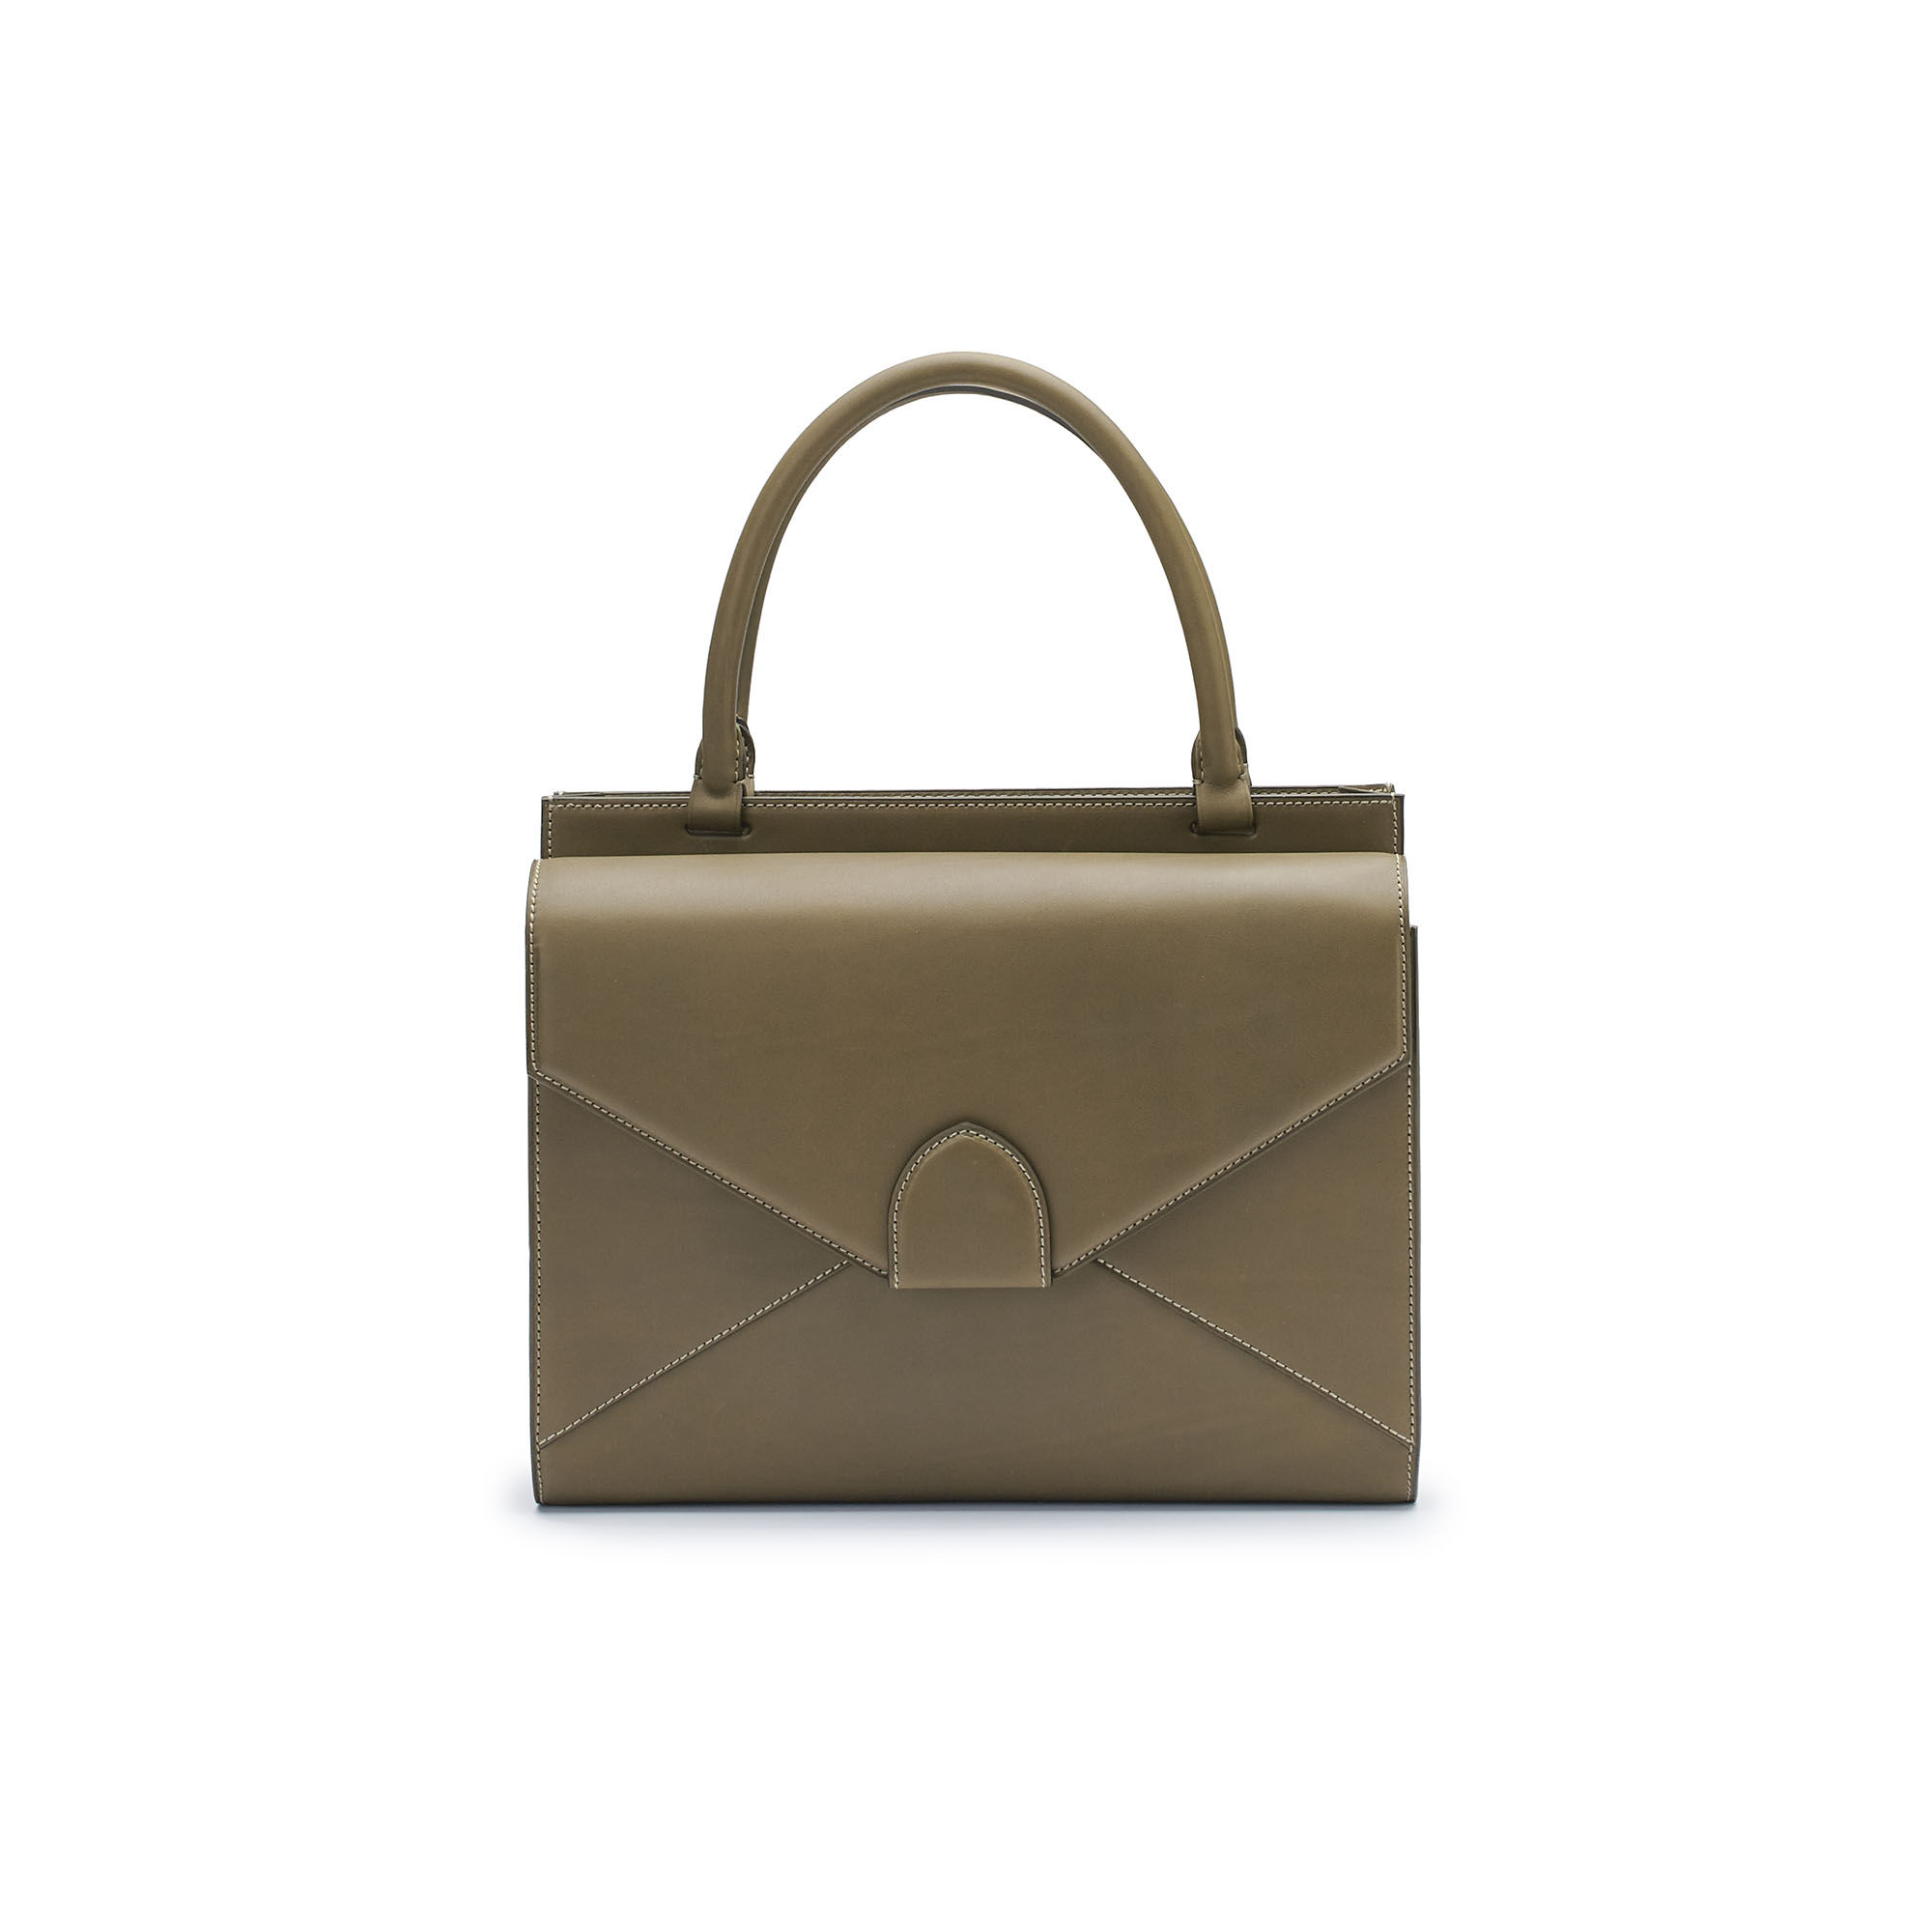 The military green french calf Double Dafne bag by Bertoni 1949 01